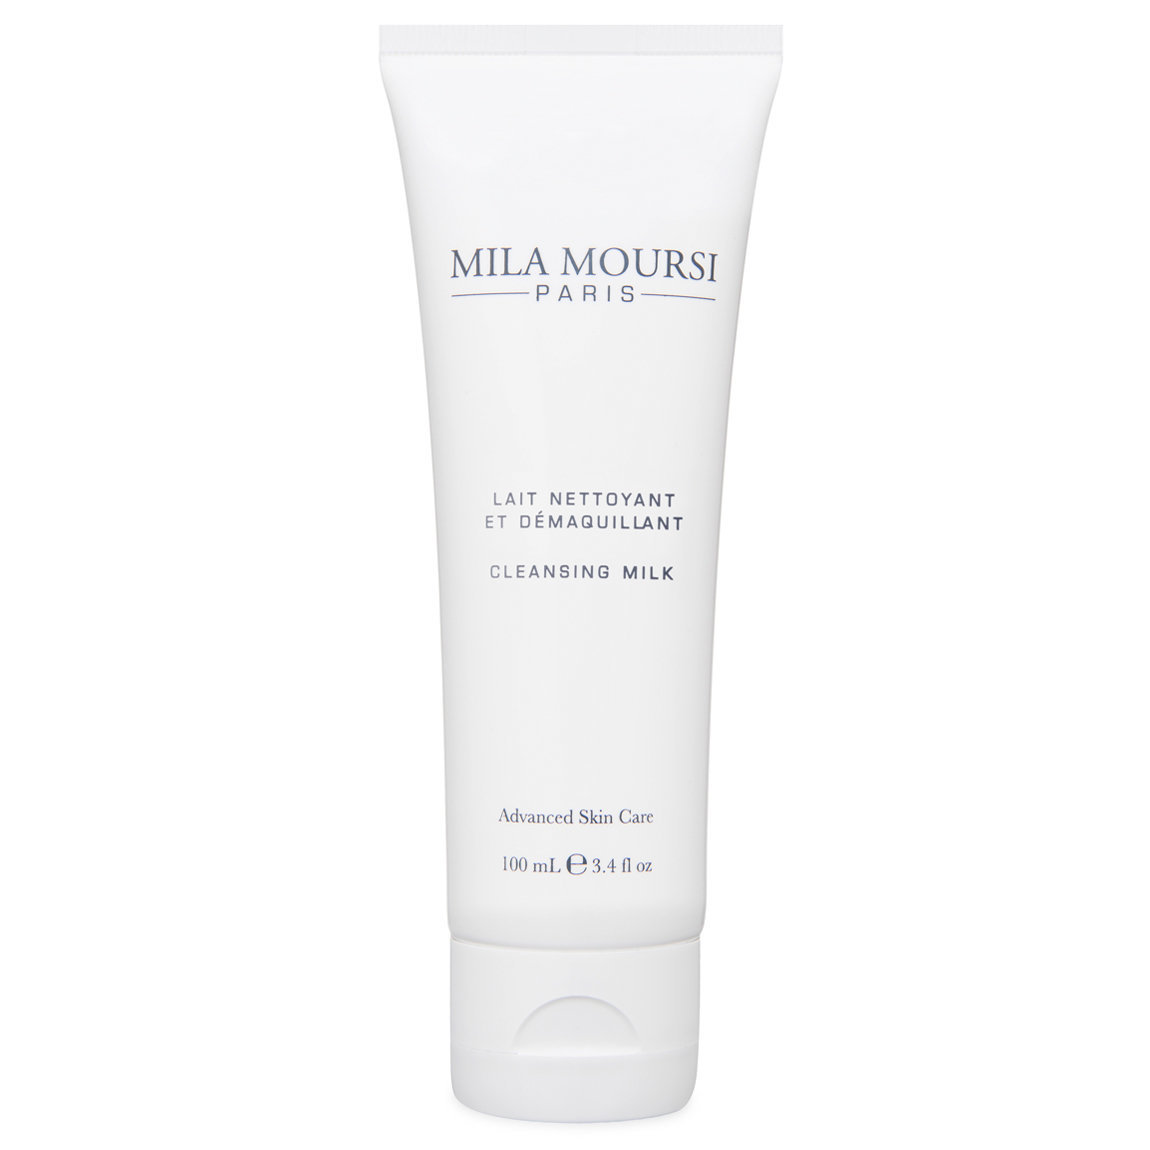 Mila Moursi Cleansing Milk 100 ml product swatch.